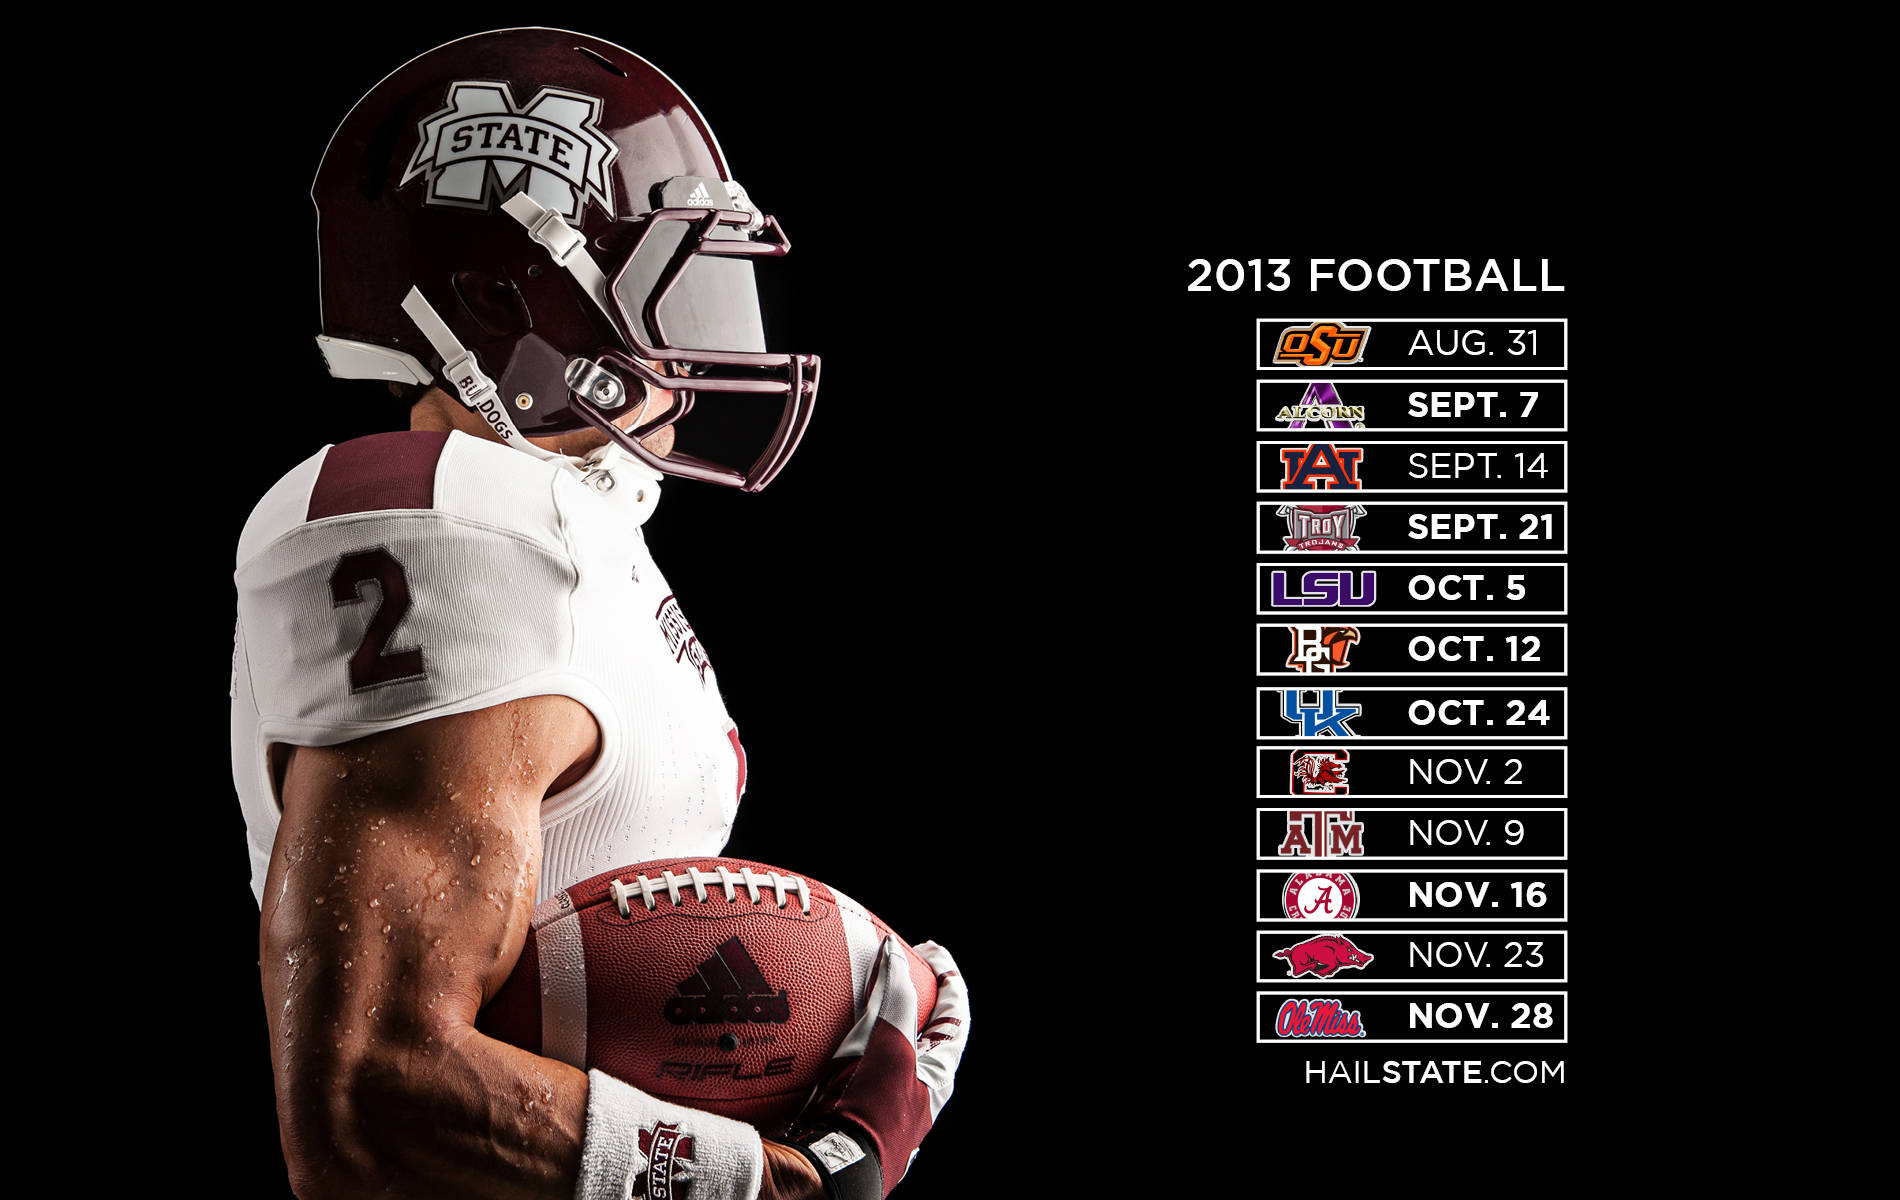 Mississippi State Football Wallpaper